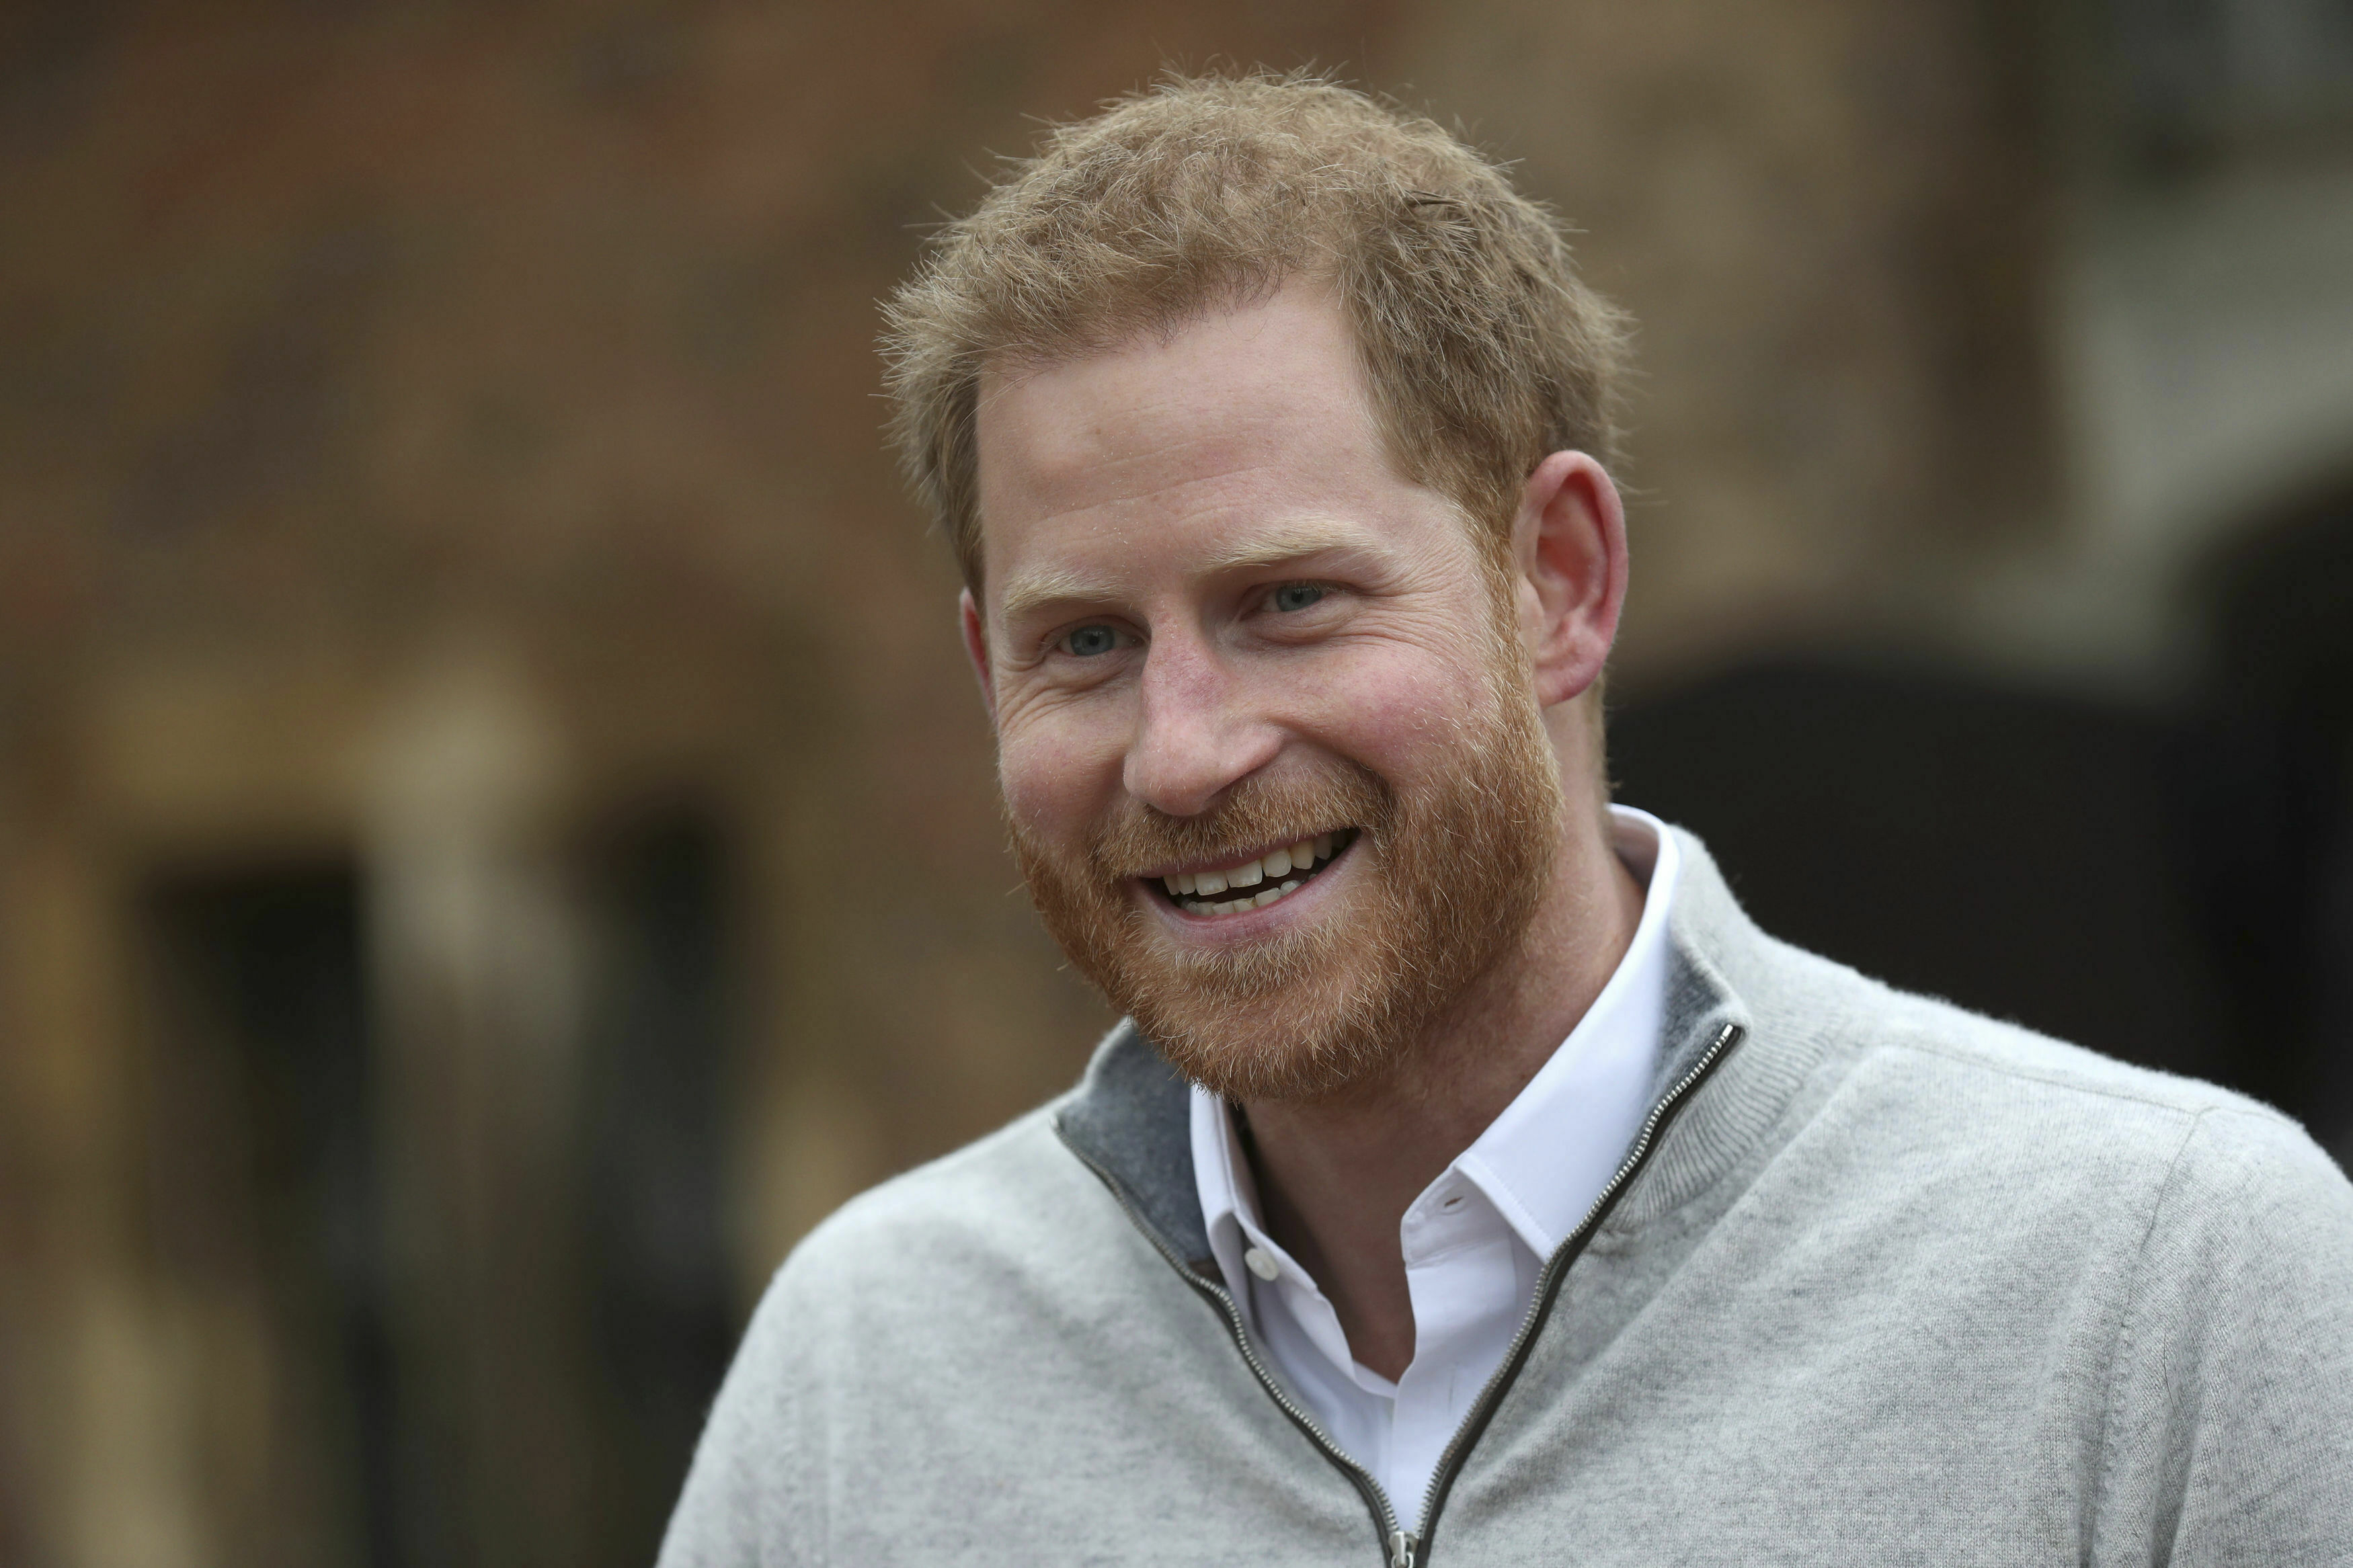 Royal baby: A boy, and a break from tradition, for Prince